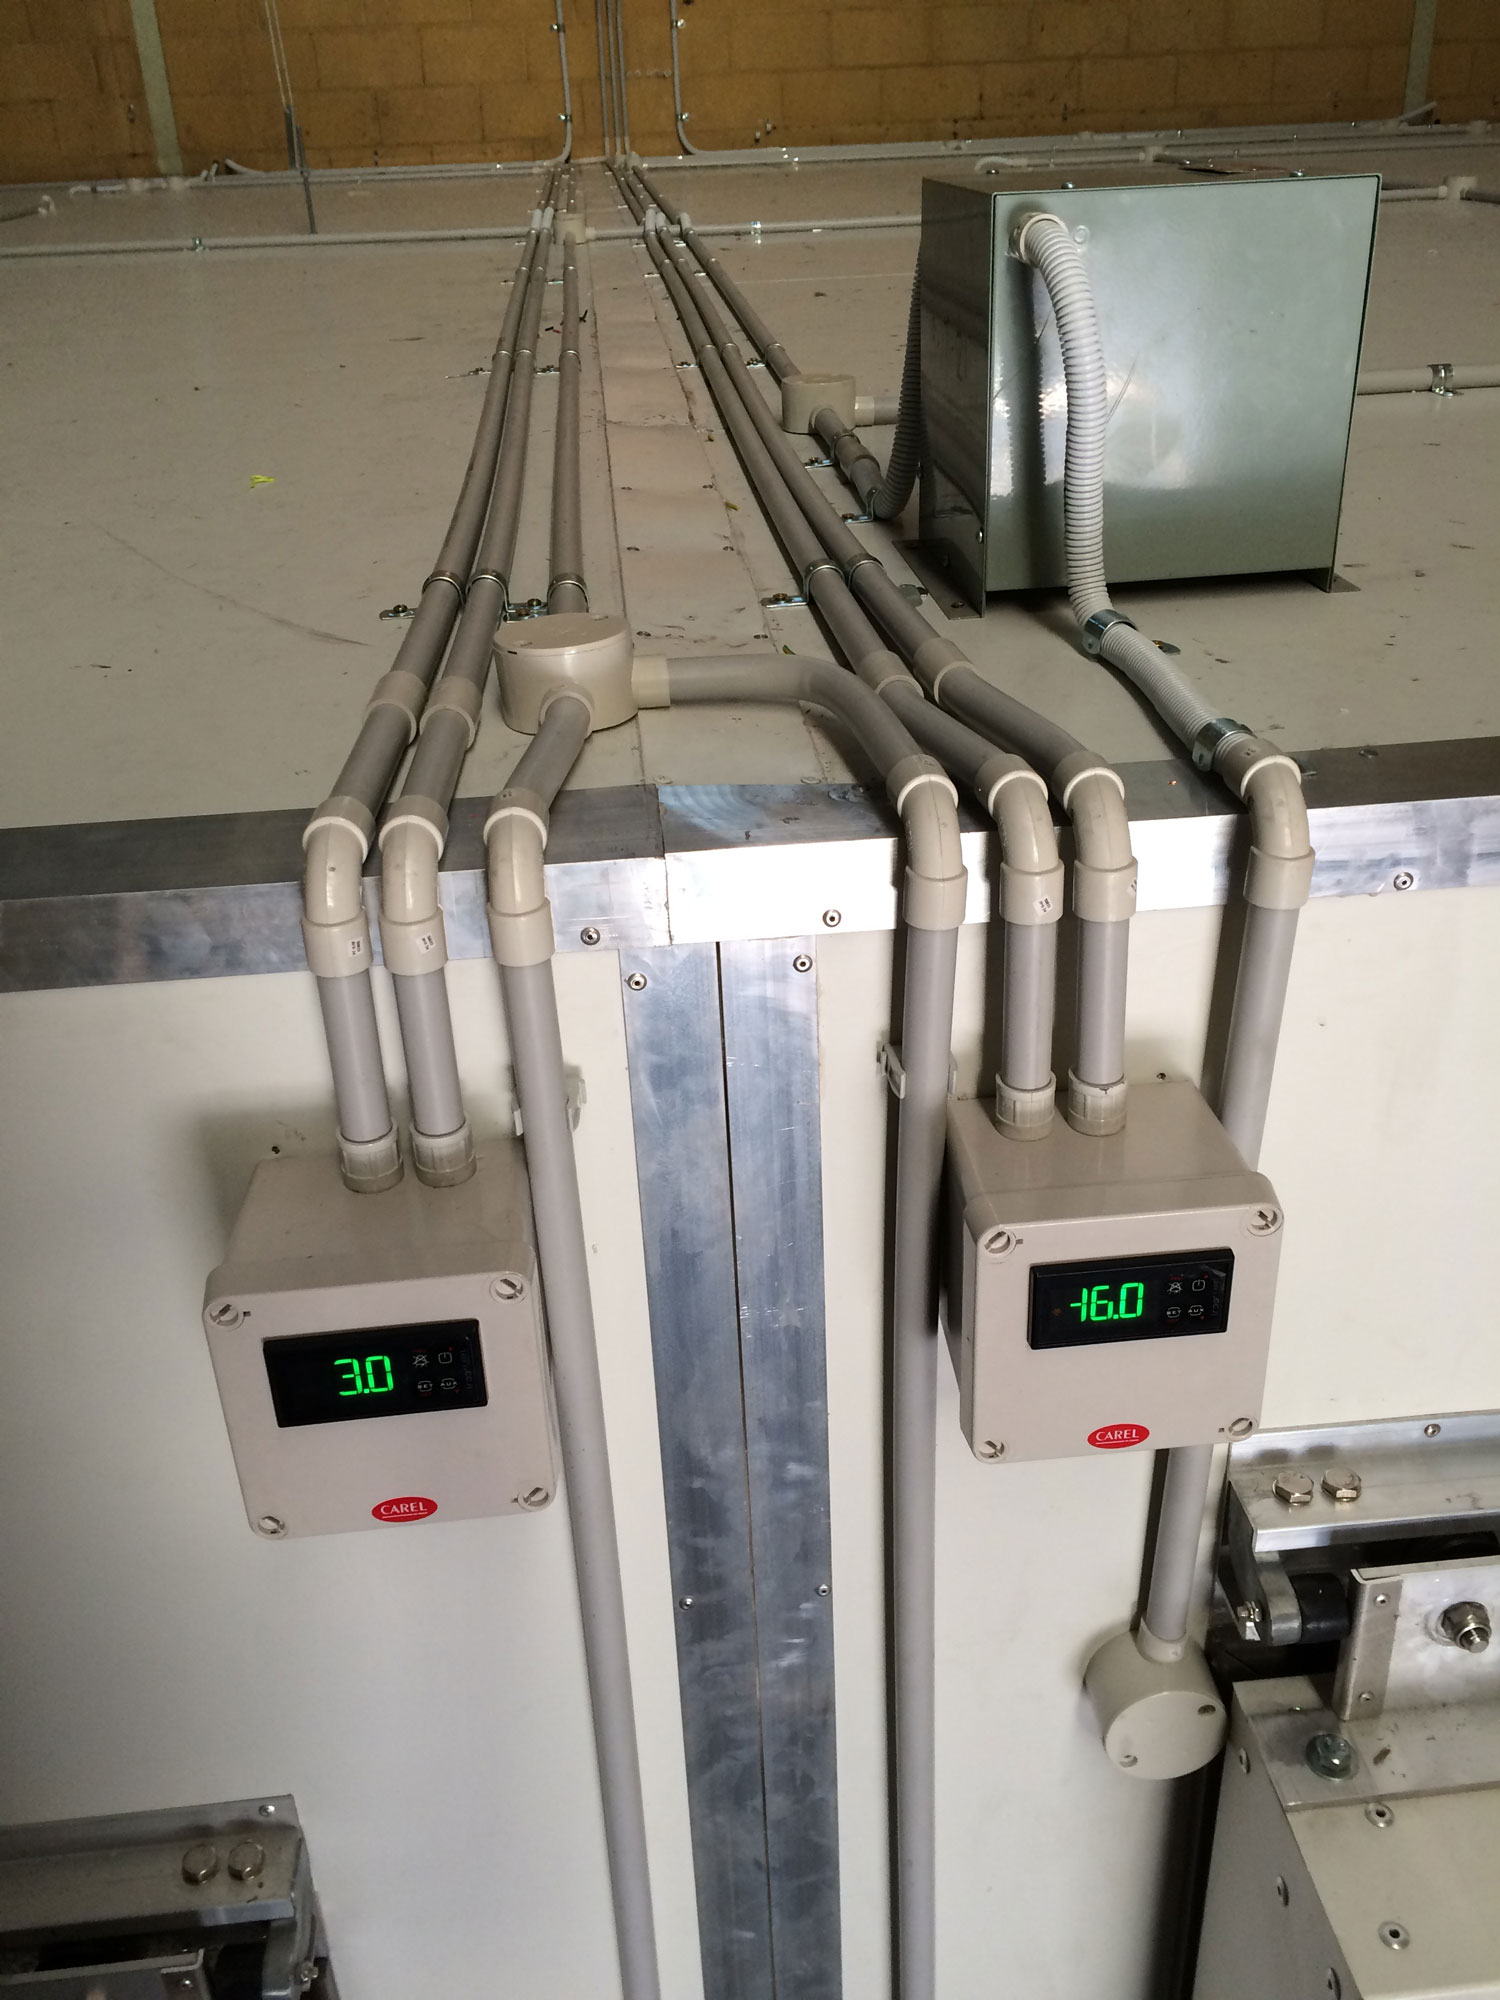 commercial refrigeration unit with temperature gauges